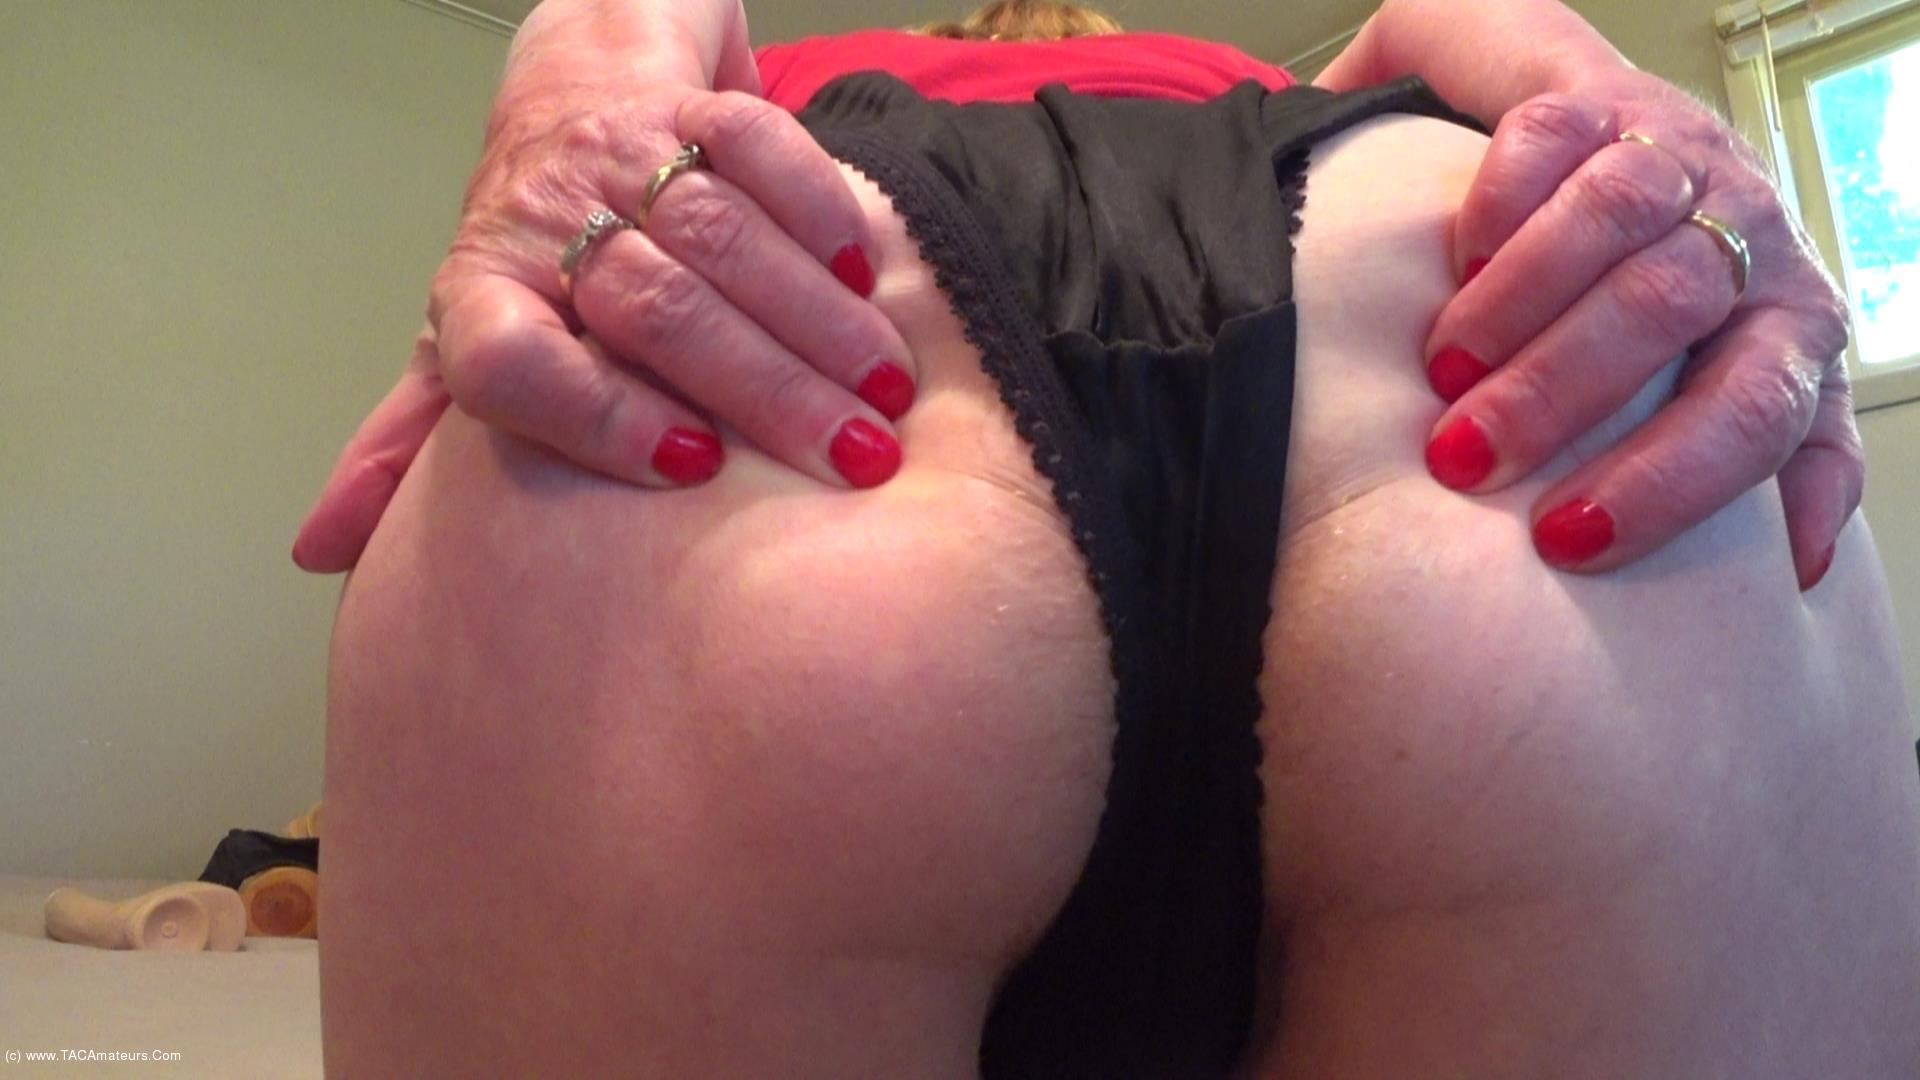 CougarBabeJolee - Arse Lovers Panty Worshipping Fun scene 3